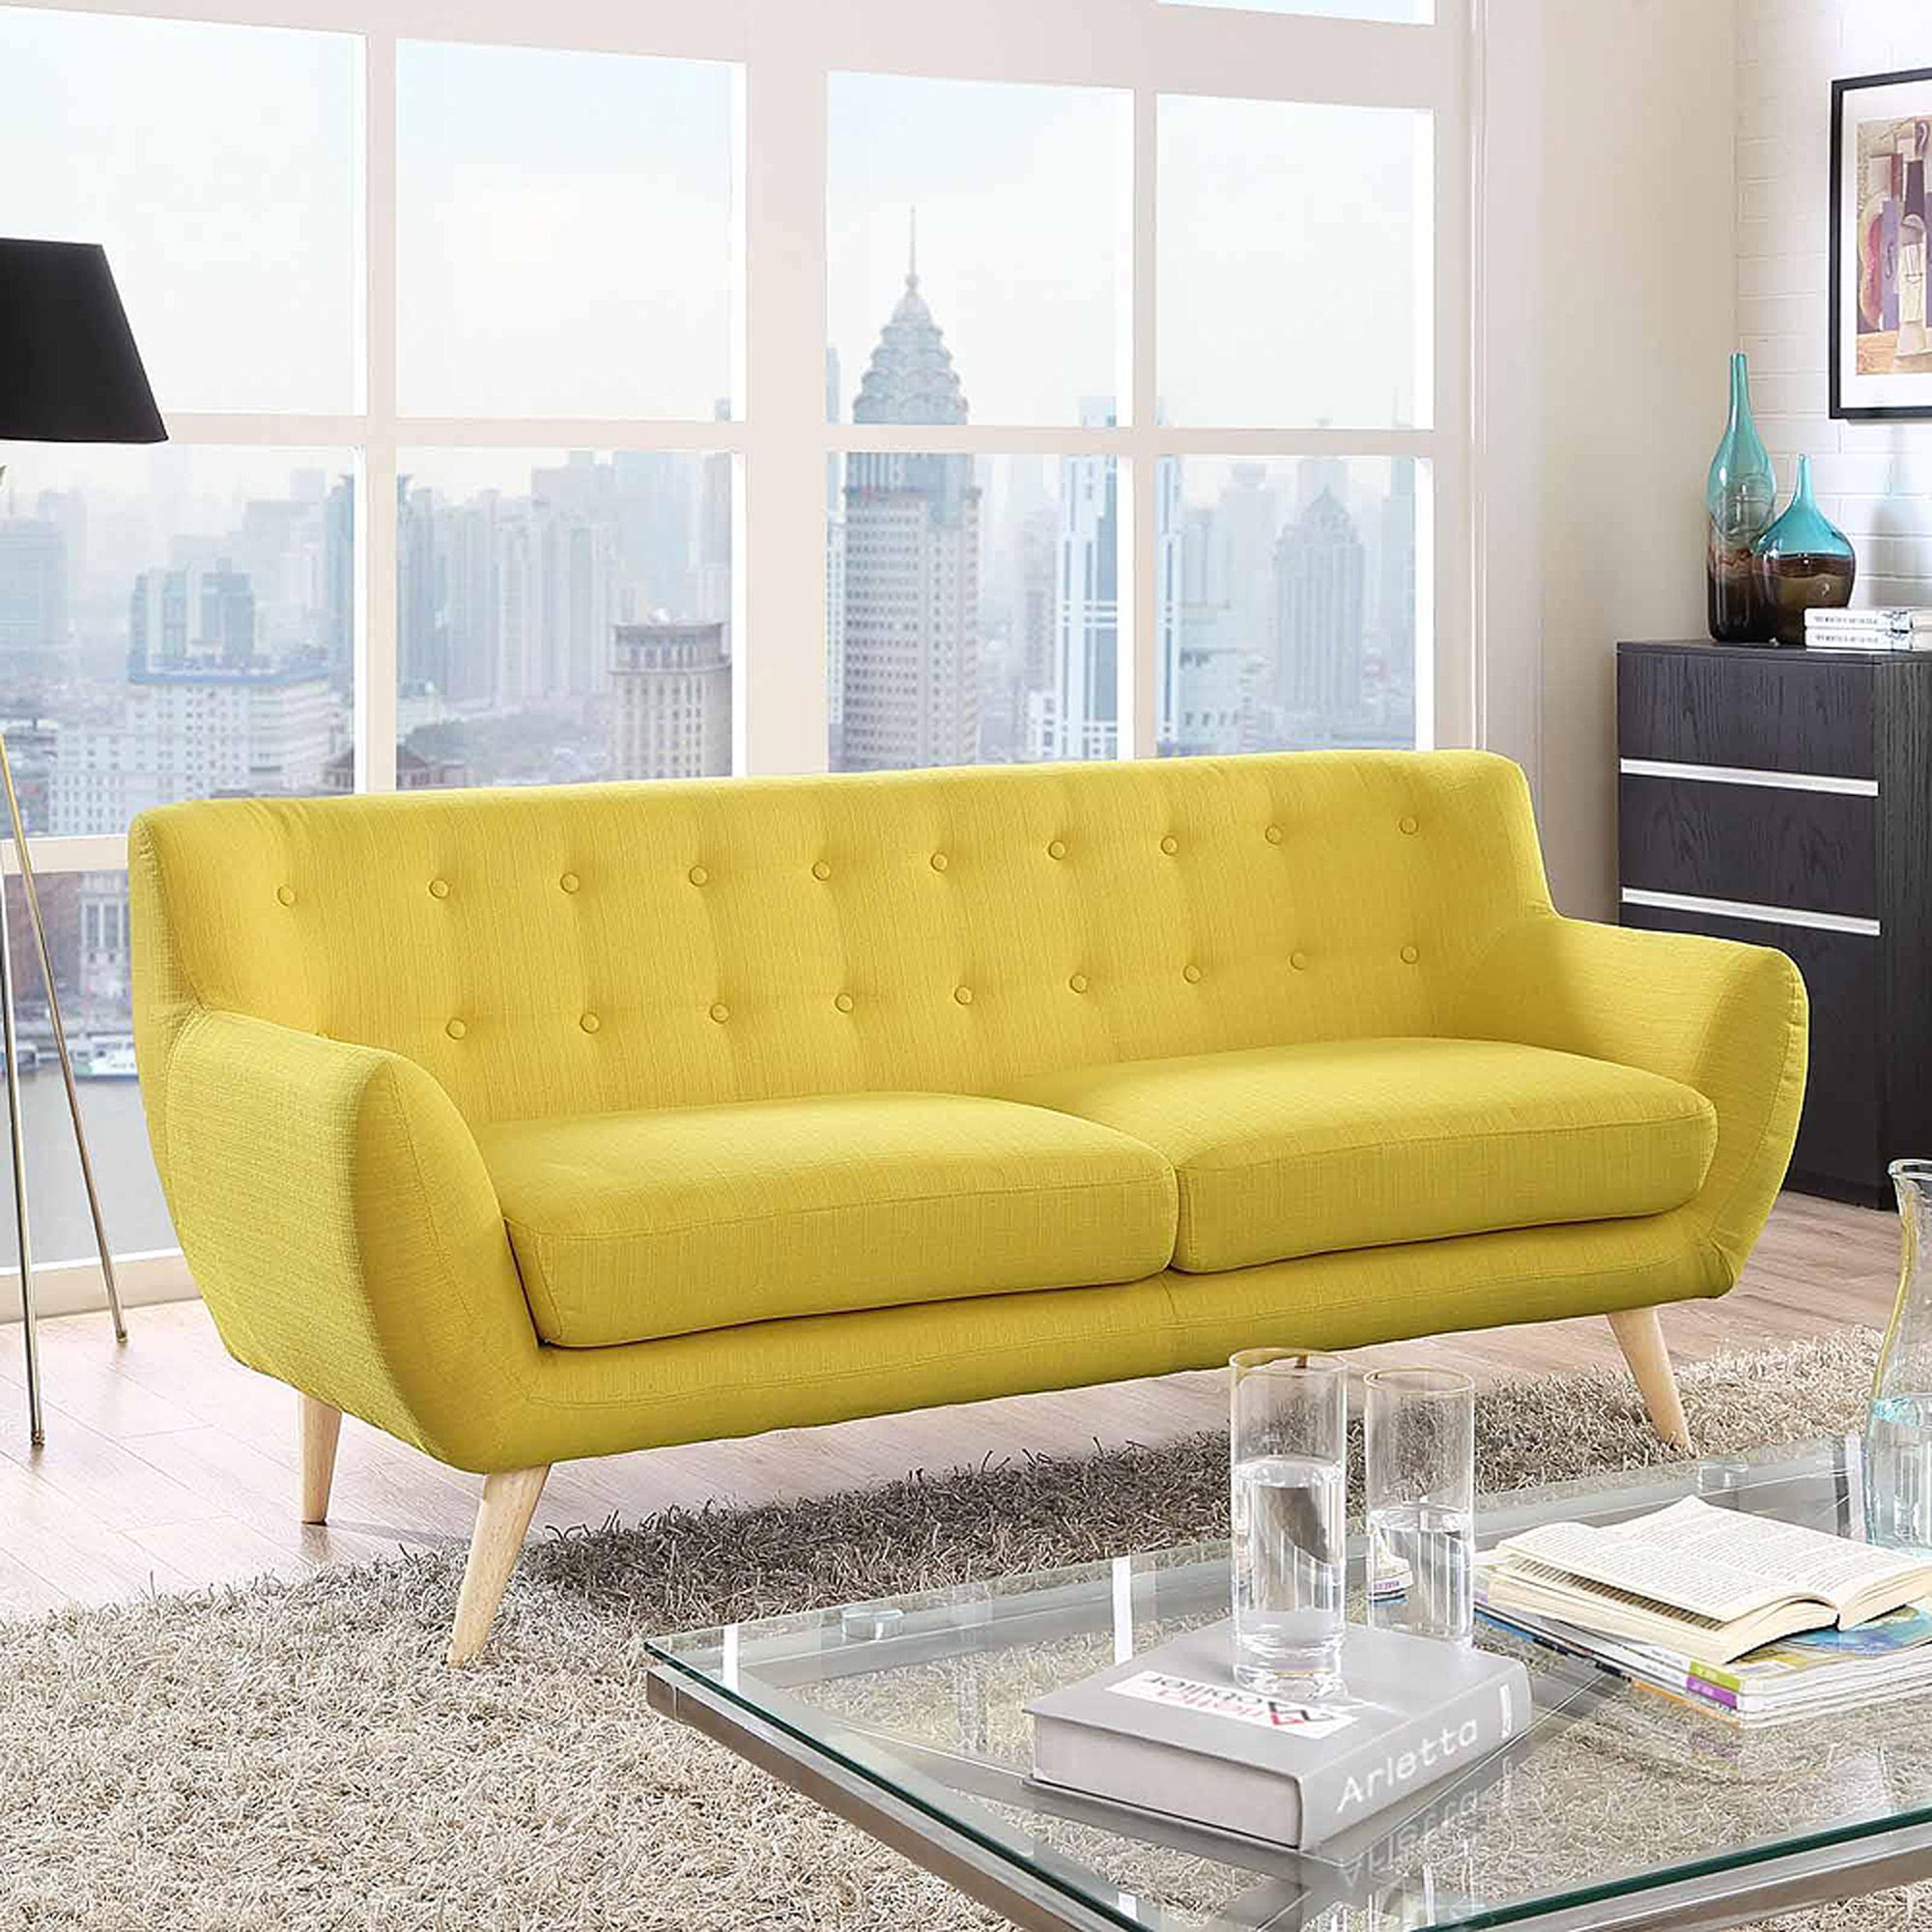 Modway Remark Modern Upholstered Sofa Multiple Colors Walmart